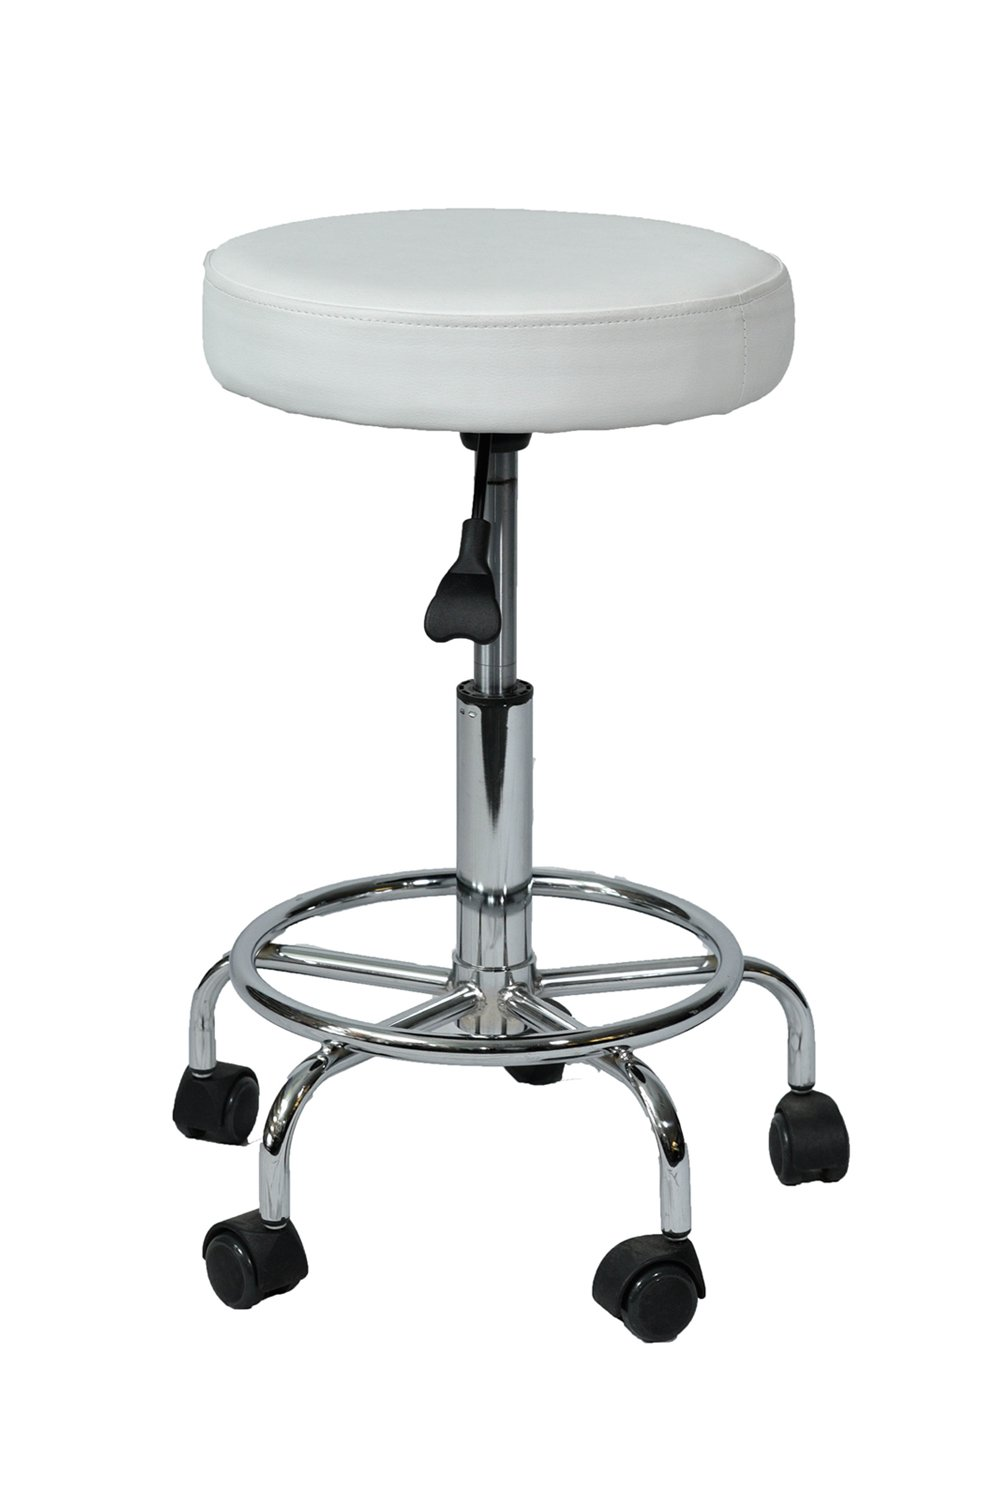 Beauty Salon All Purpose Hydraulic Adjustable Rolling Stools/Chairs With Round Foot Rest (Chrome Base)For Massage, Physiotherapy, Hair Salons Spa, Doctors Comfort Relief Stool (Black) ZD